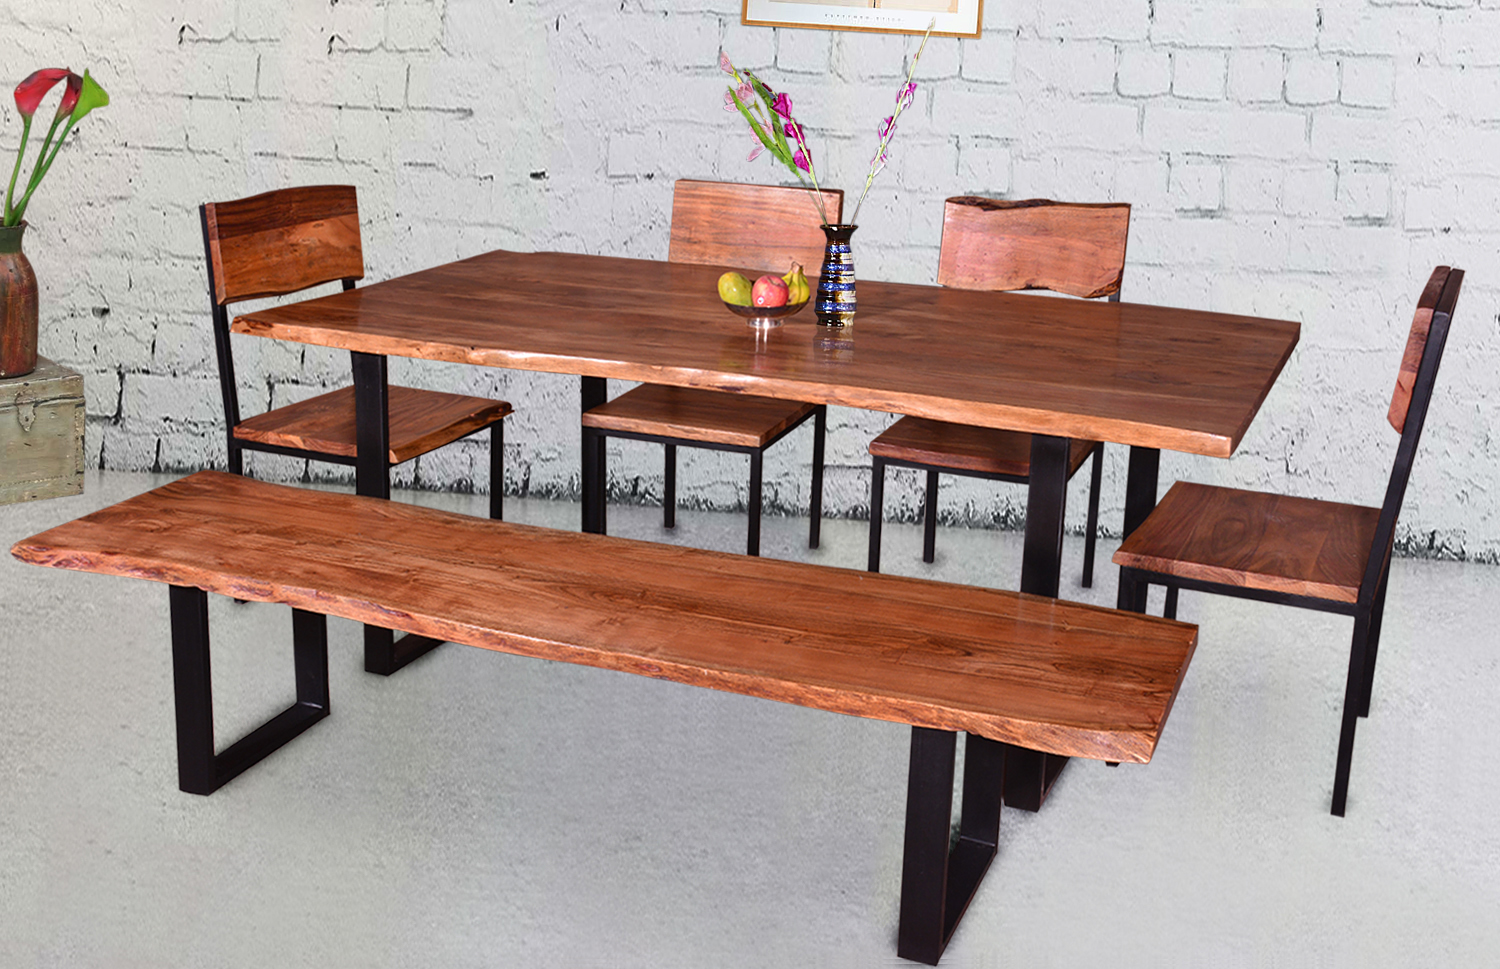 Indian Wooden Furniture Manufacturer Supplier Jodhpur Furniture Exporter